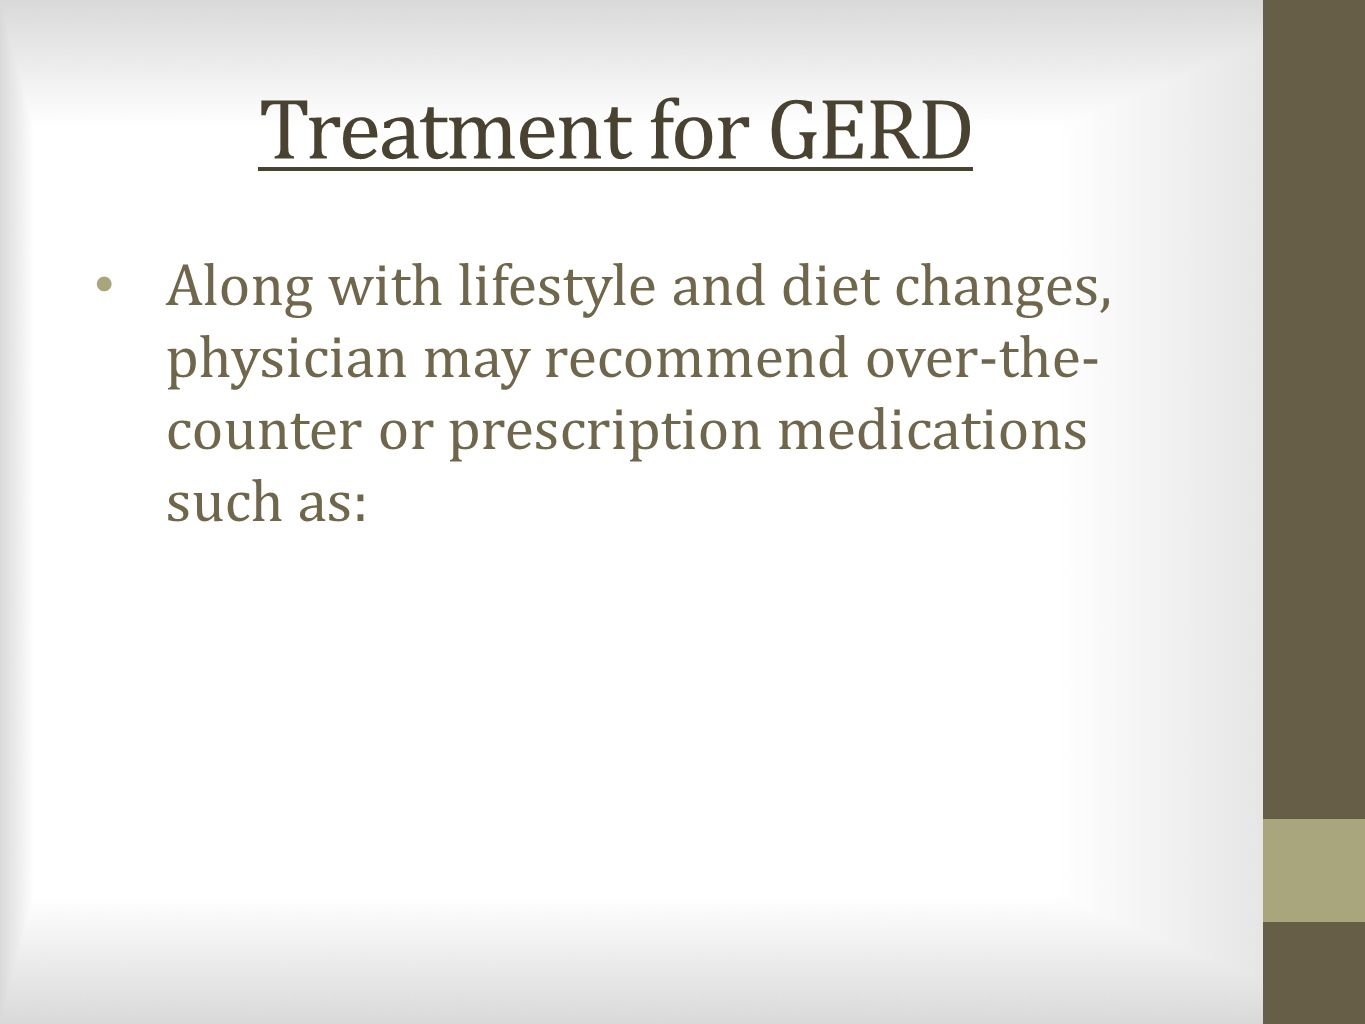 Treatment for GERD Along with lifestyle and diet changes, physician may recommend over-the- counter or prescription medications such as: